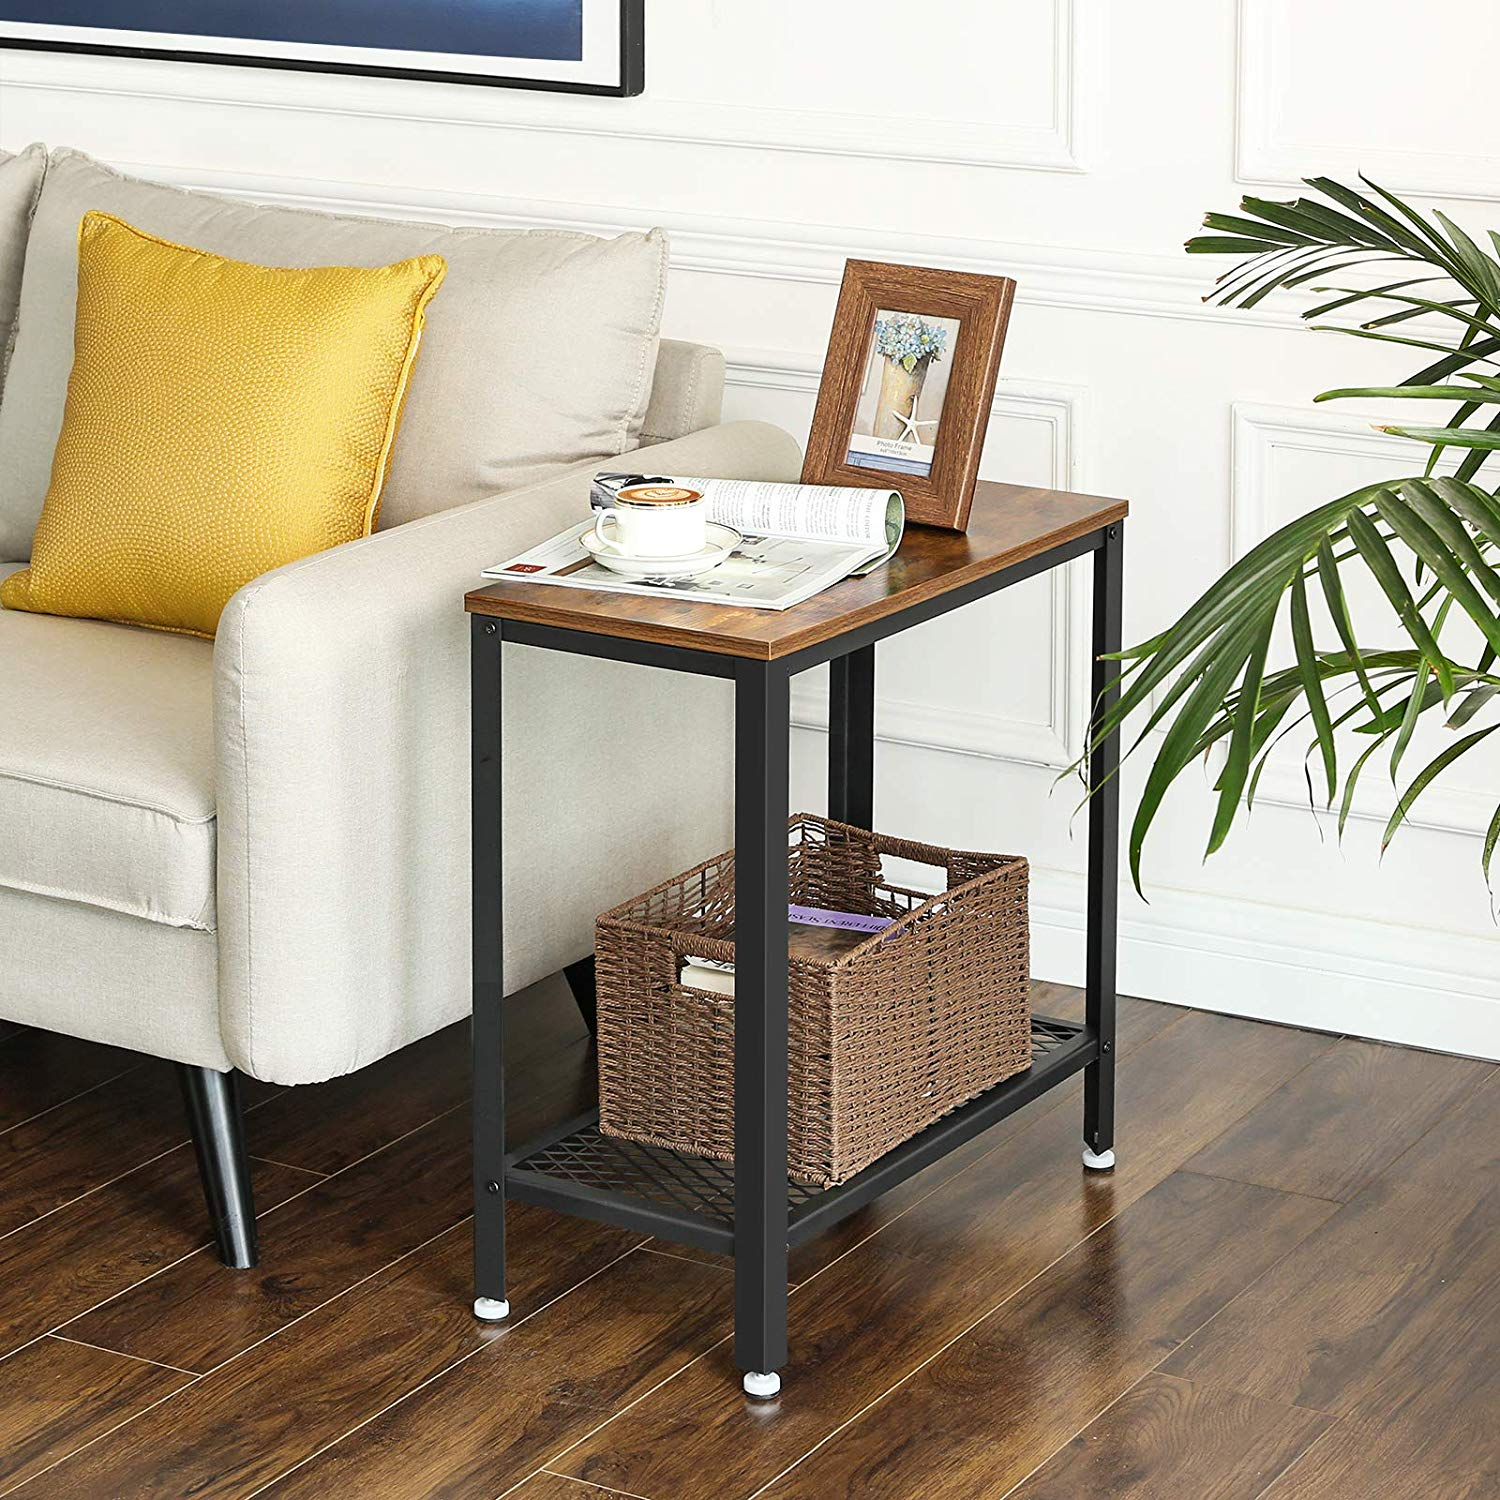 Enjoy fast, free nationwide shipping!  Family owned and operated, HawkinsWoodshop.com is your one stop shop for affordable furniture.  Shop HawkinsWoodshop.com for solid wood & metal modern, traditional, contemporary, industrial, custom, rustic, and farmhouse furniture including our Ryan Industrial Side Table Nightstand.